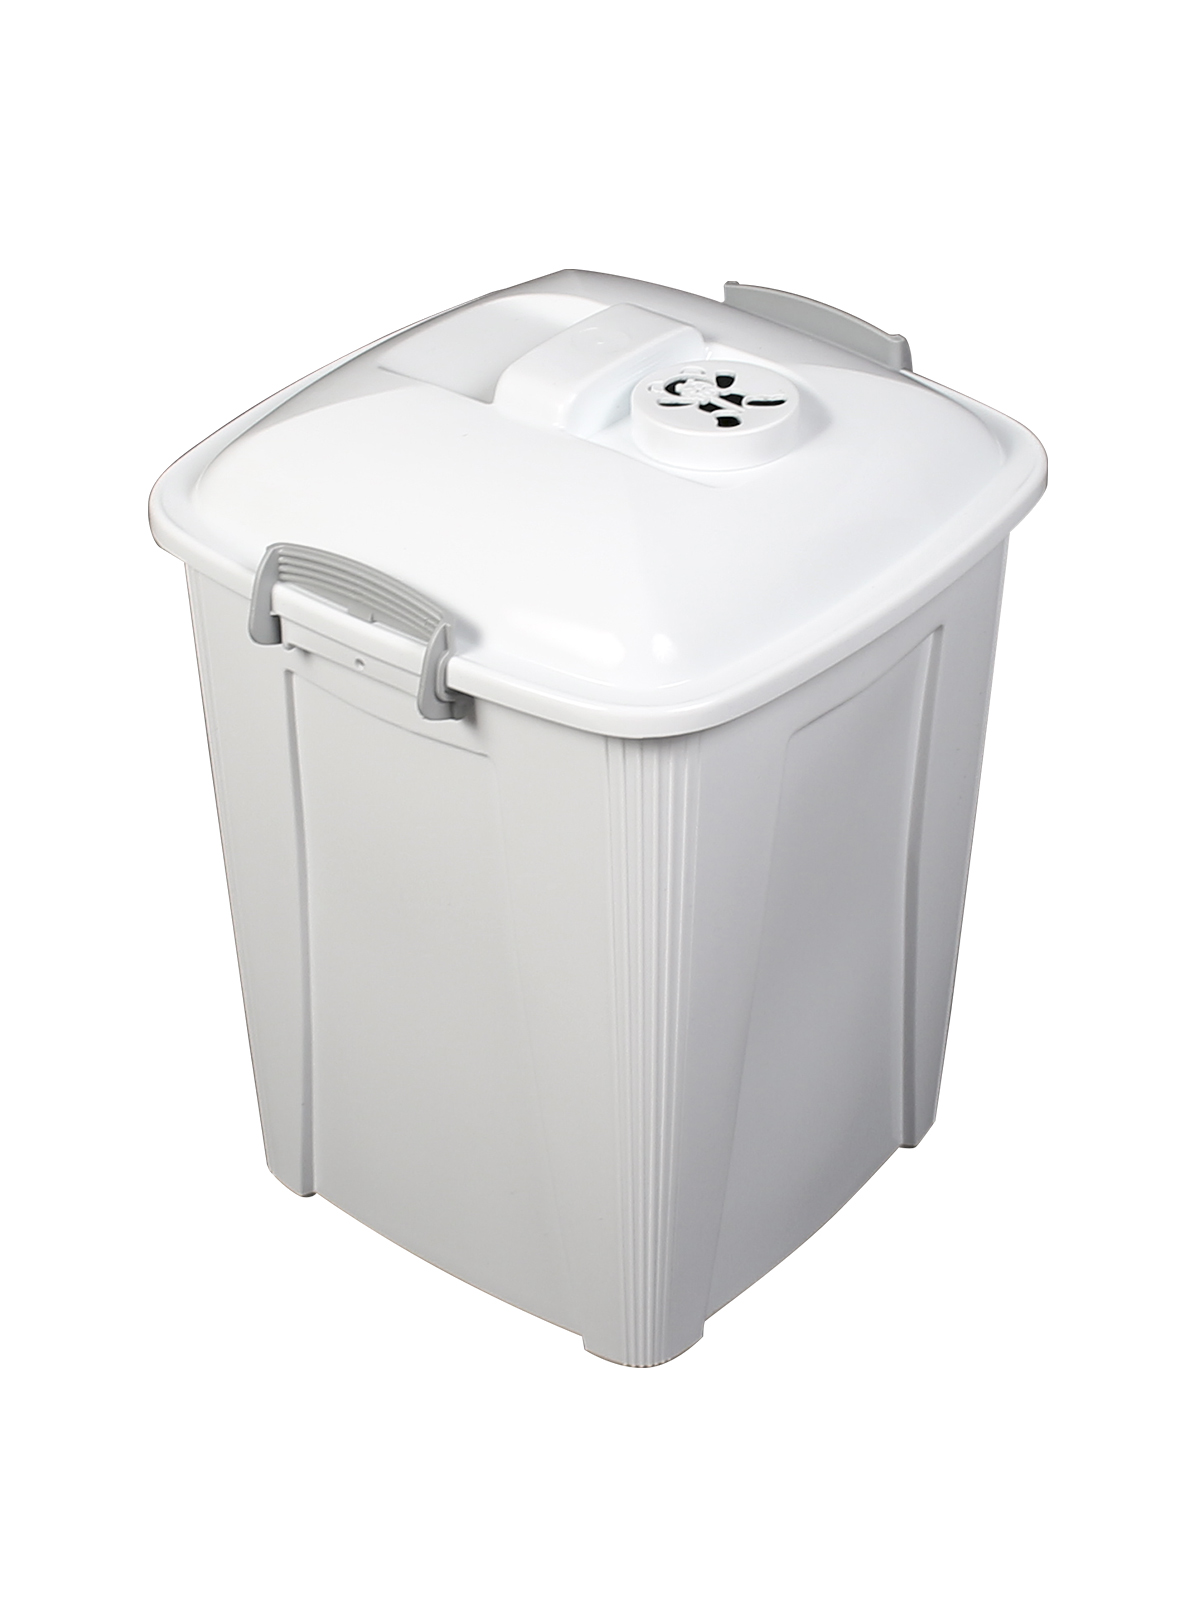 DIAPER PAIL - Single - Unit - 7 G - Vented Lift - White